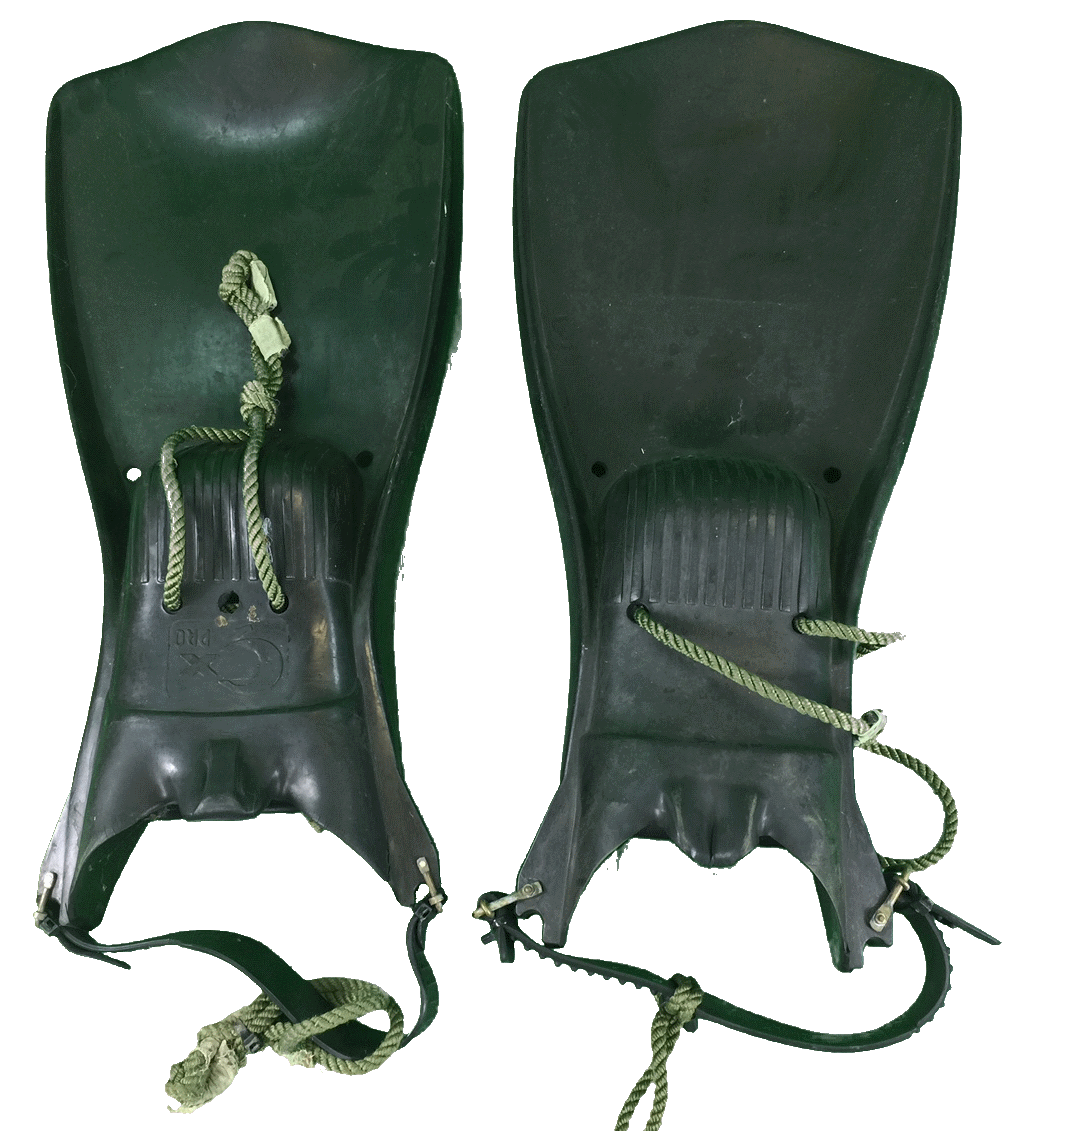 Military navy naval surplus diving swimming fins flippers